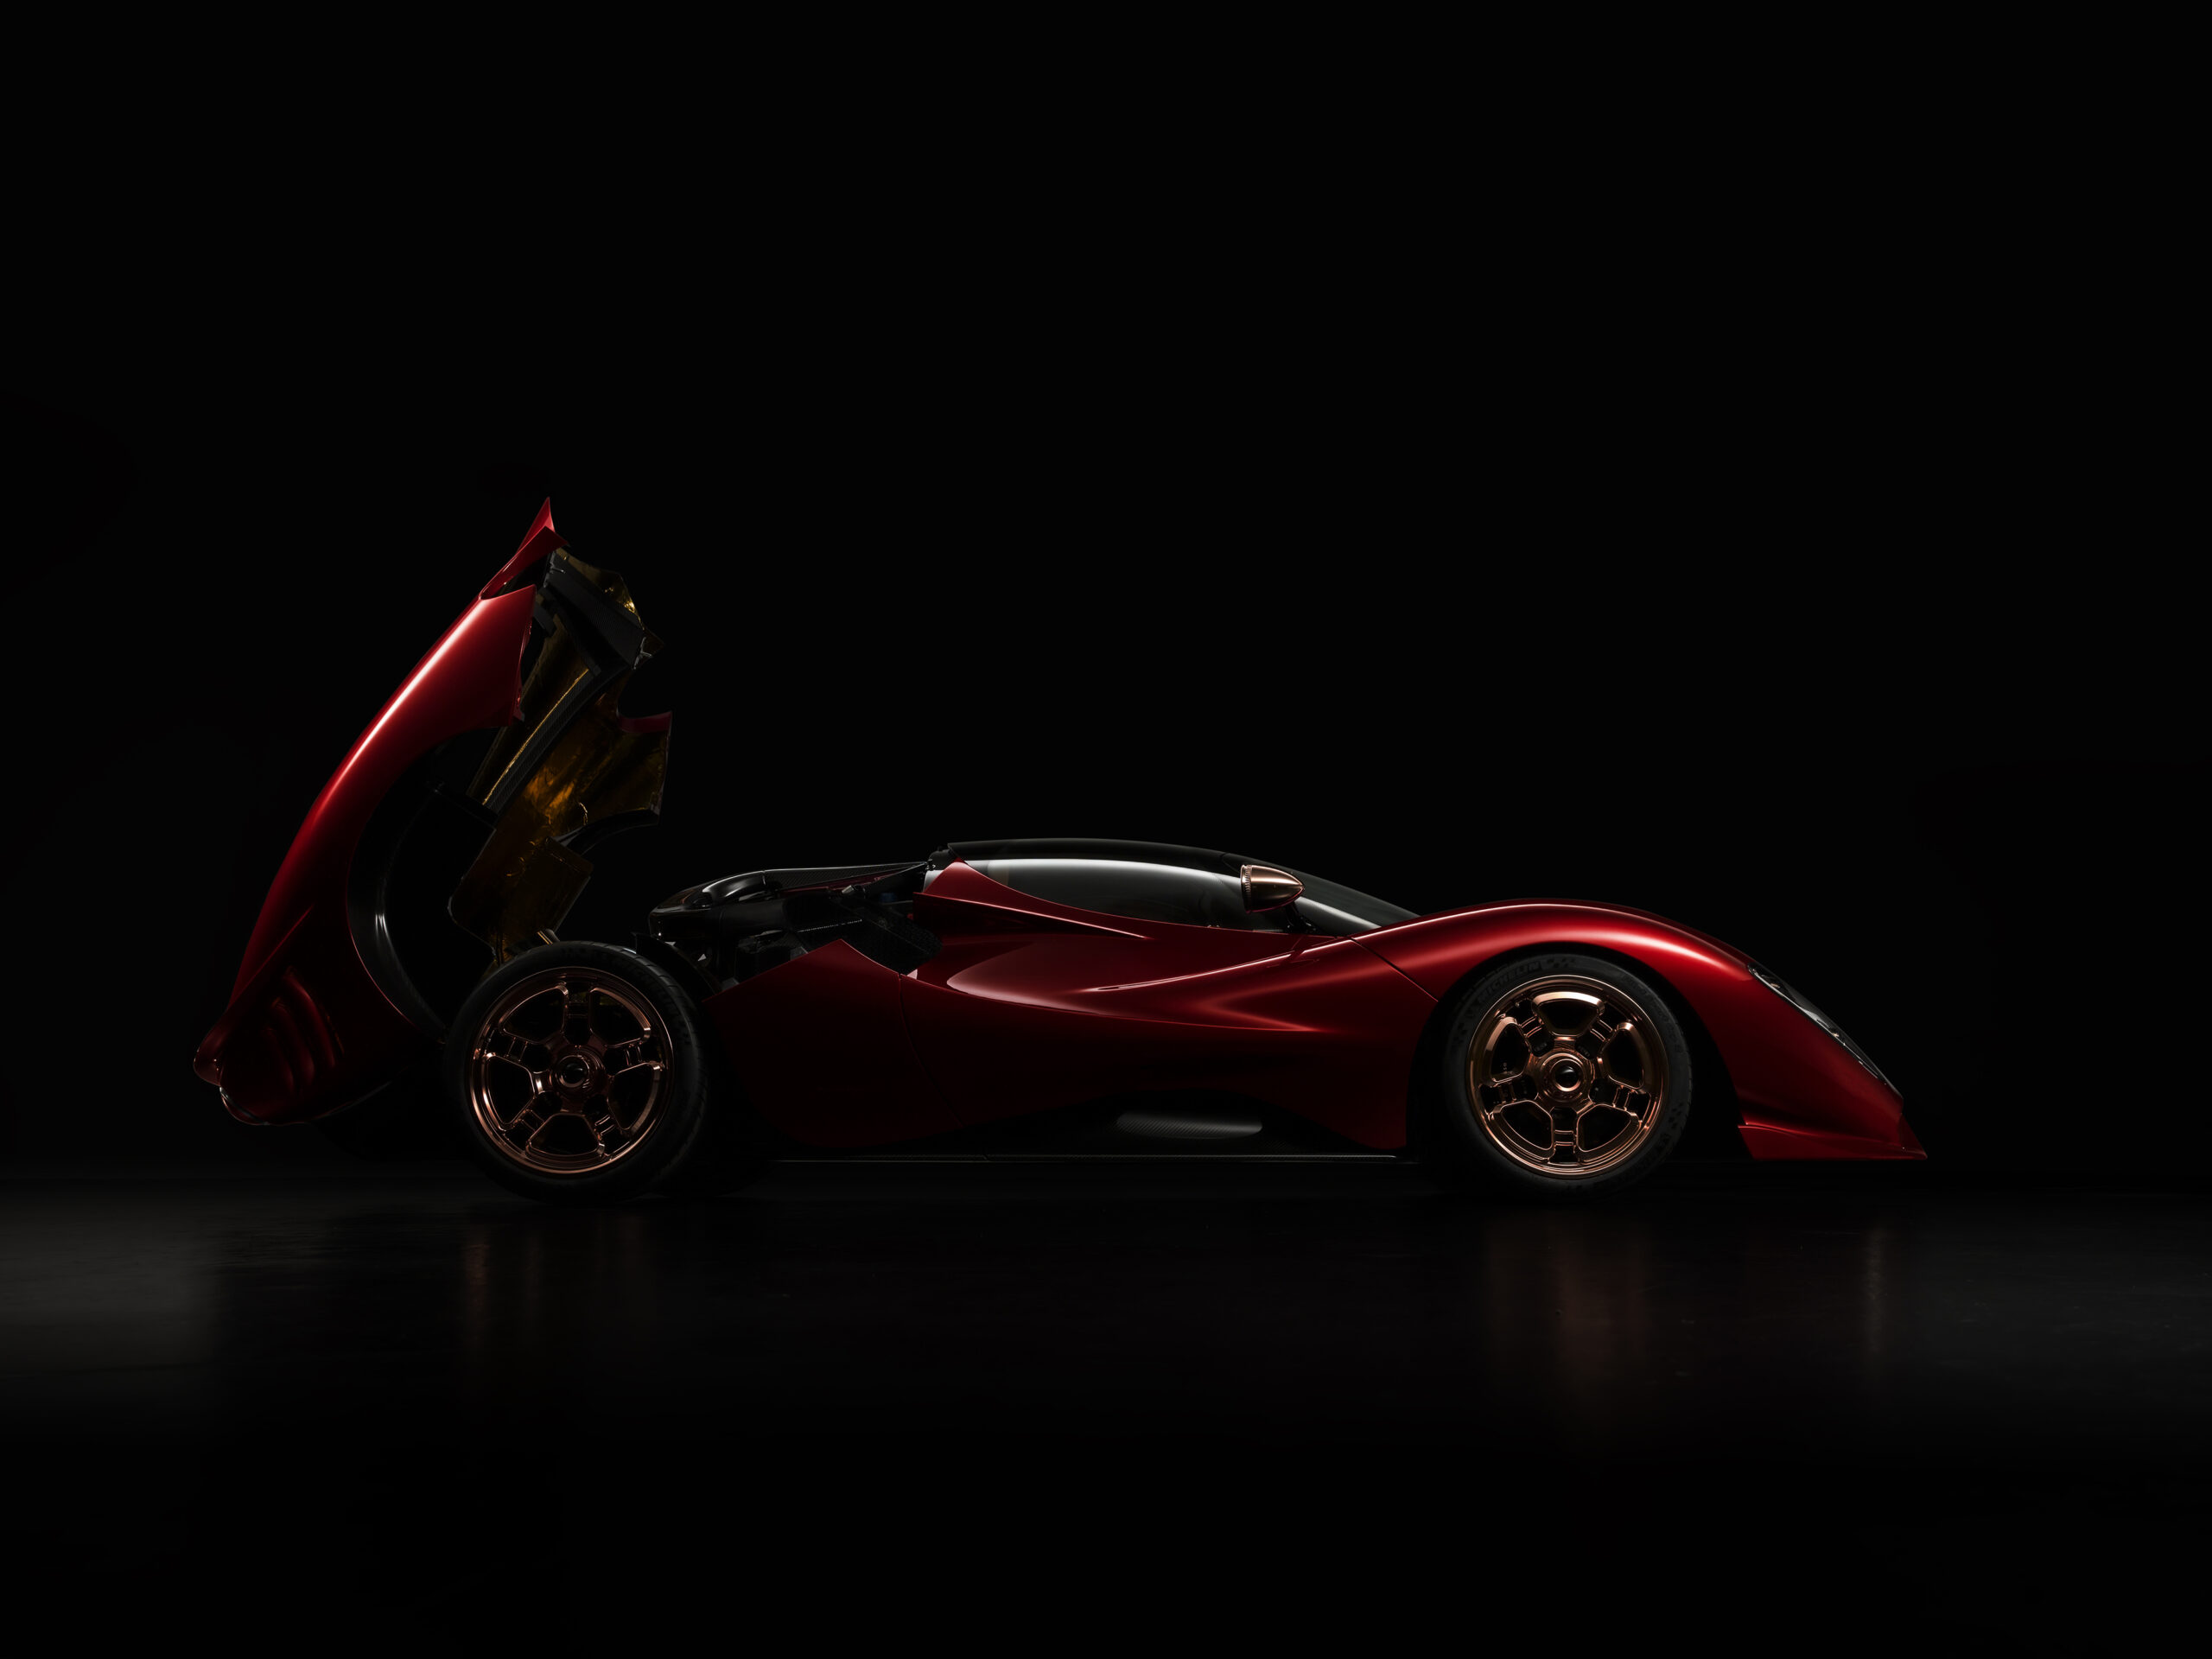 Side view of the P72 hypercar with engine door open